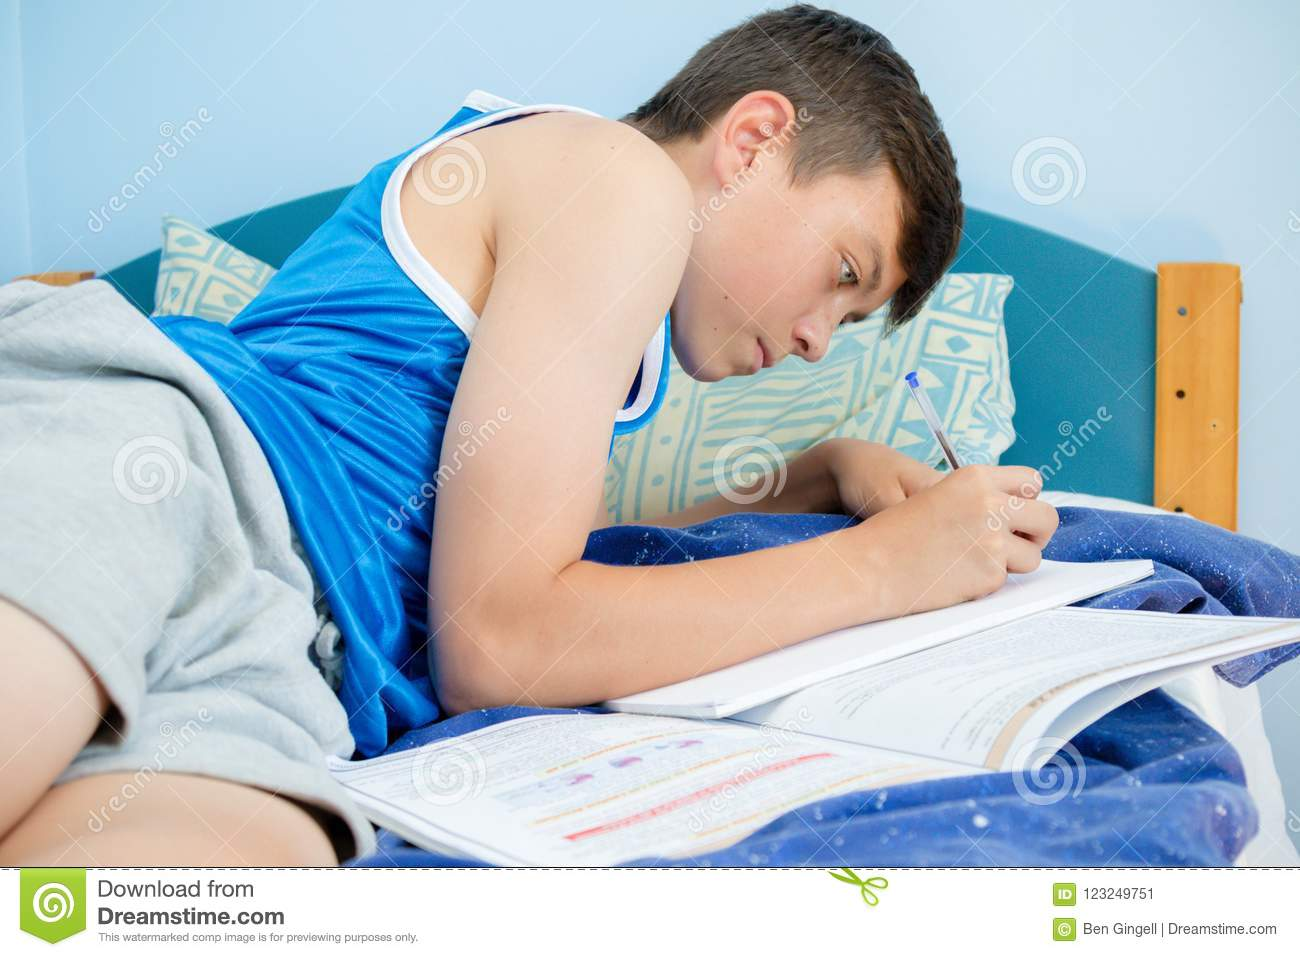 Teen boy in bed late, than